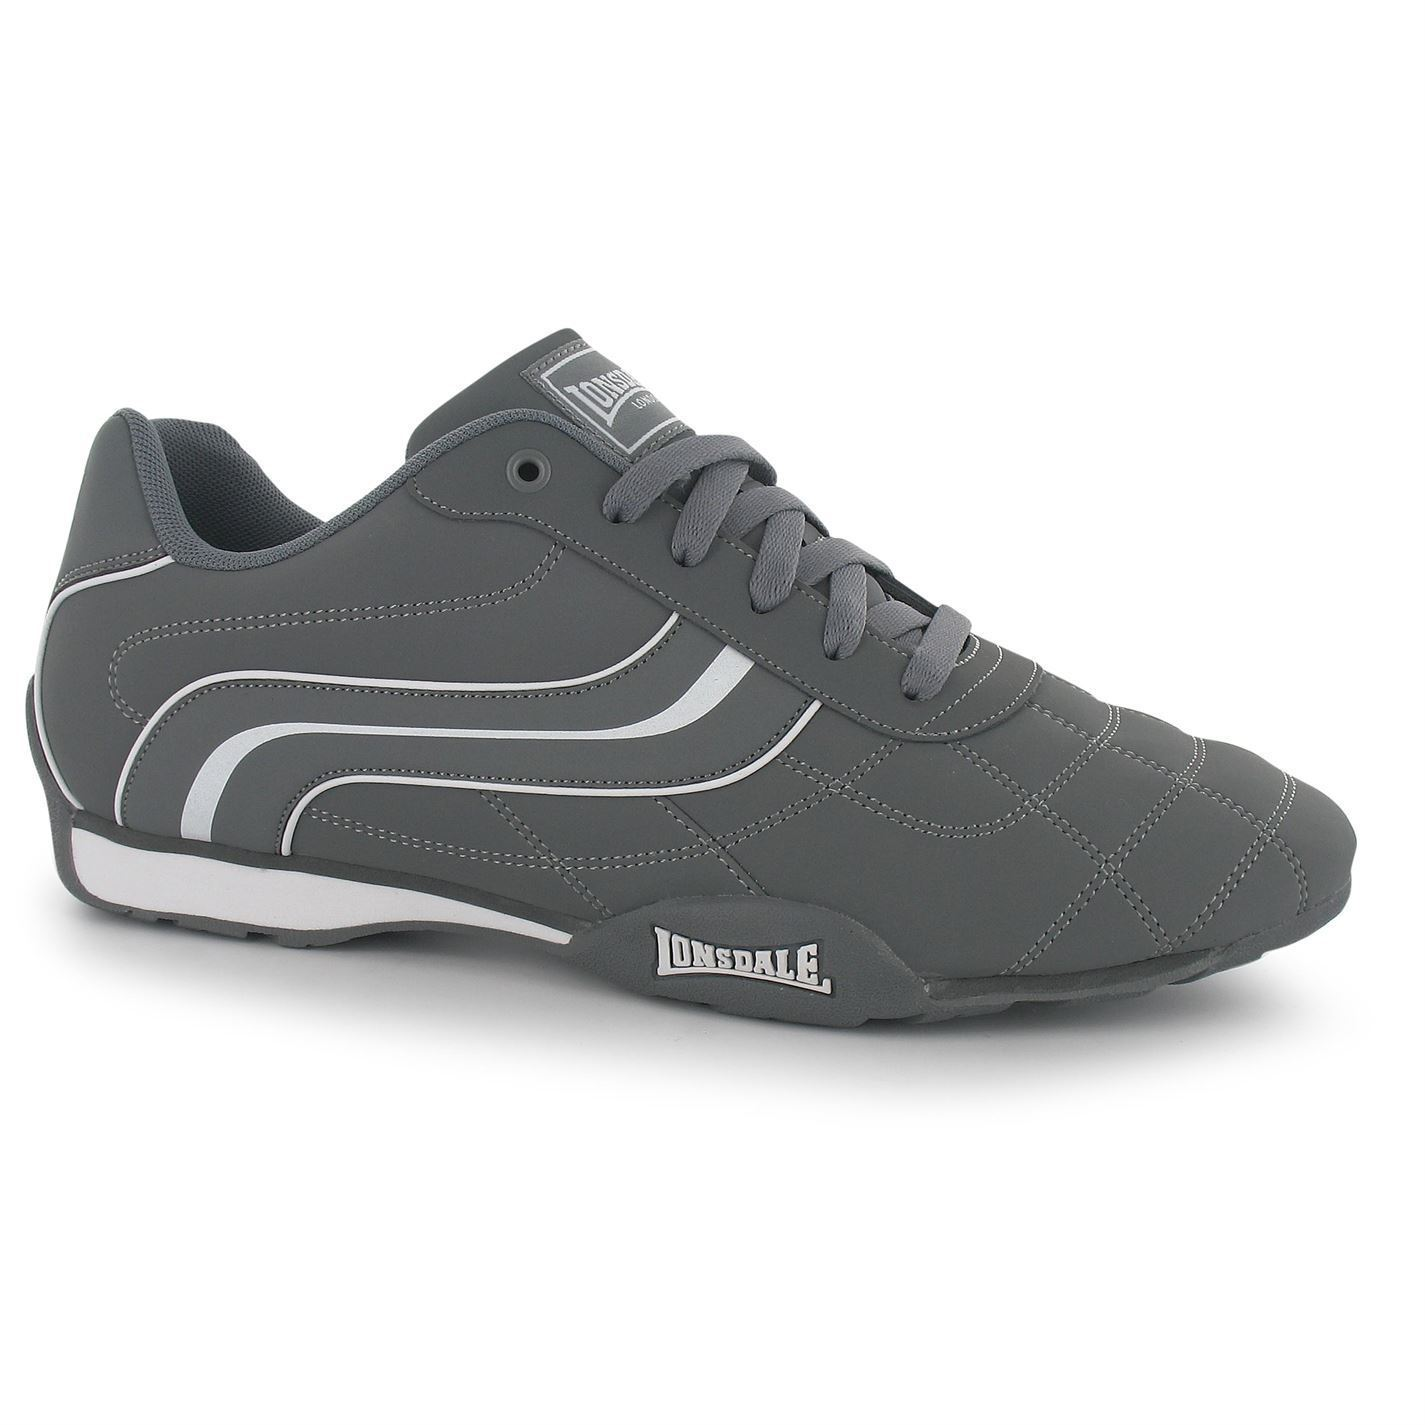 Lonsdale Camden Trainers Mens Grey White Casual Sneakers shoes Footwear